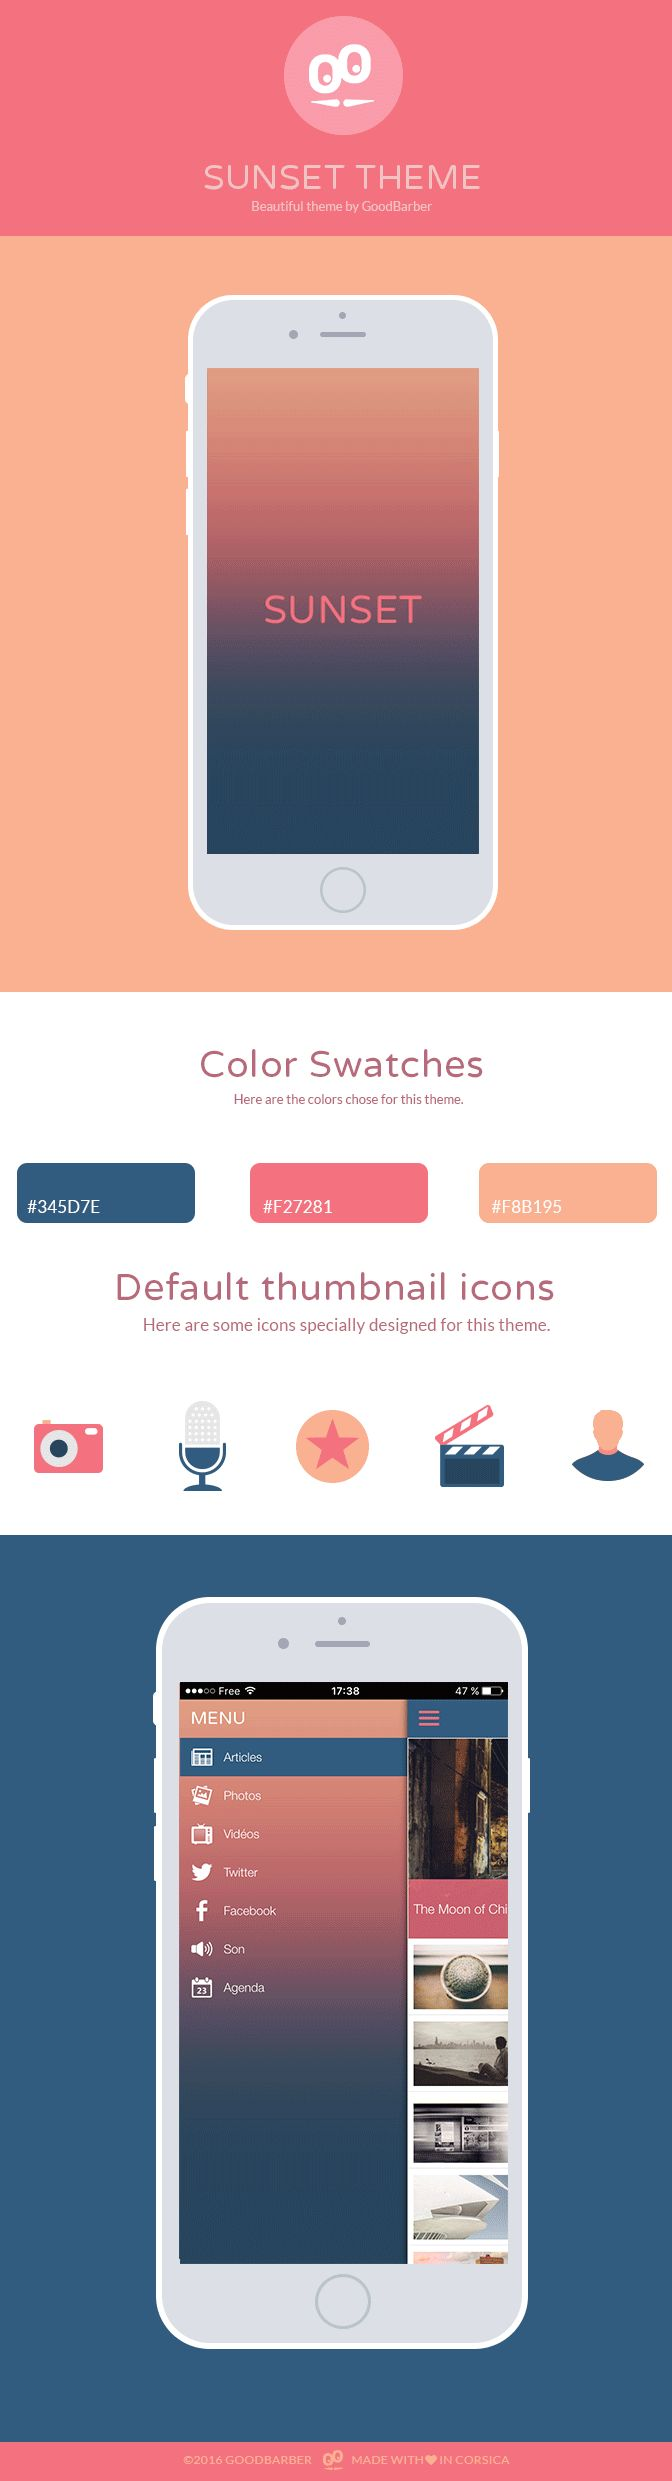 Sunset is one of the 50+ themes available in your GoodBarber backend. Use it as a starting point to create your Beautiful App #Design #Theme #AppDesign #mobiledev